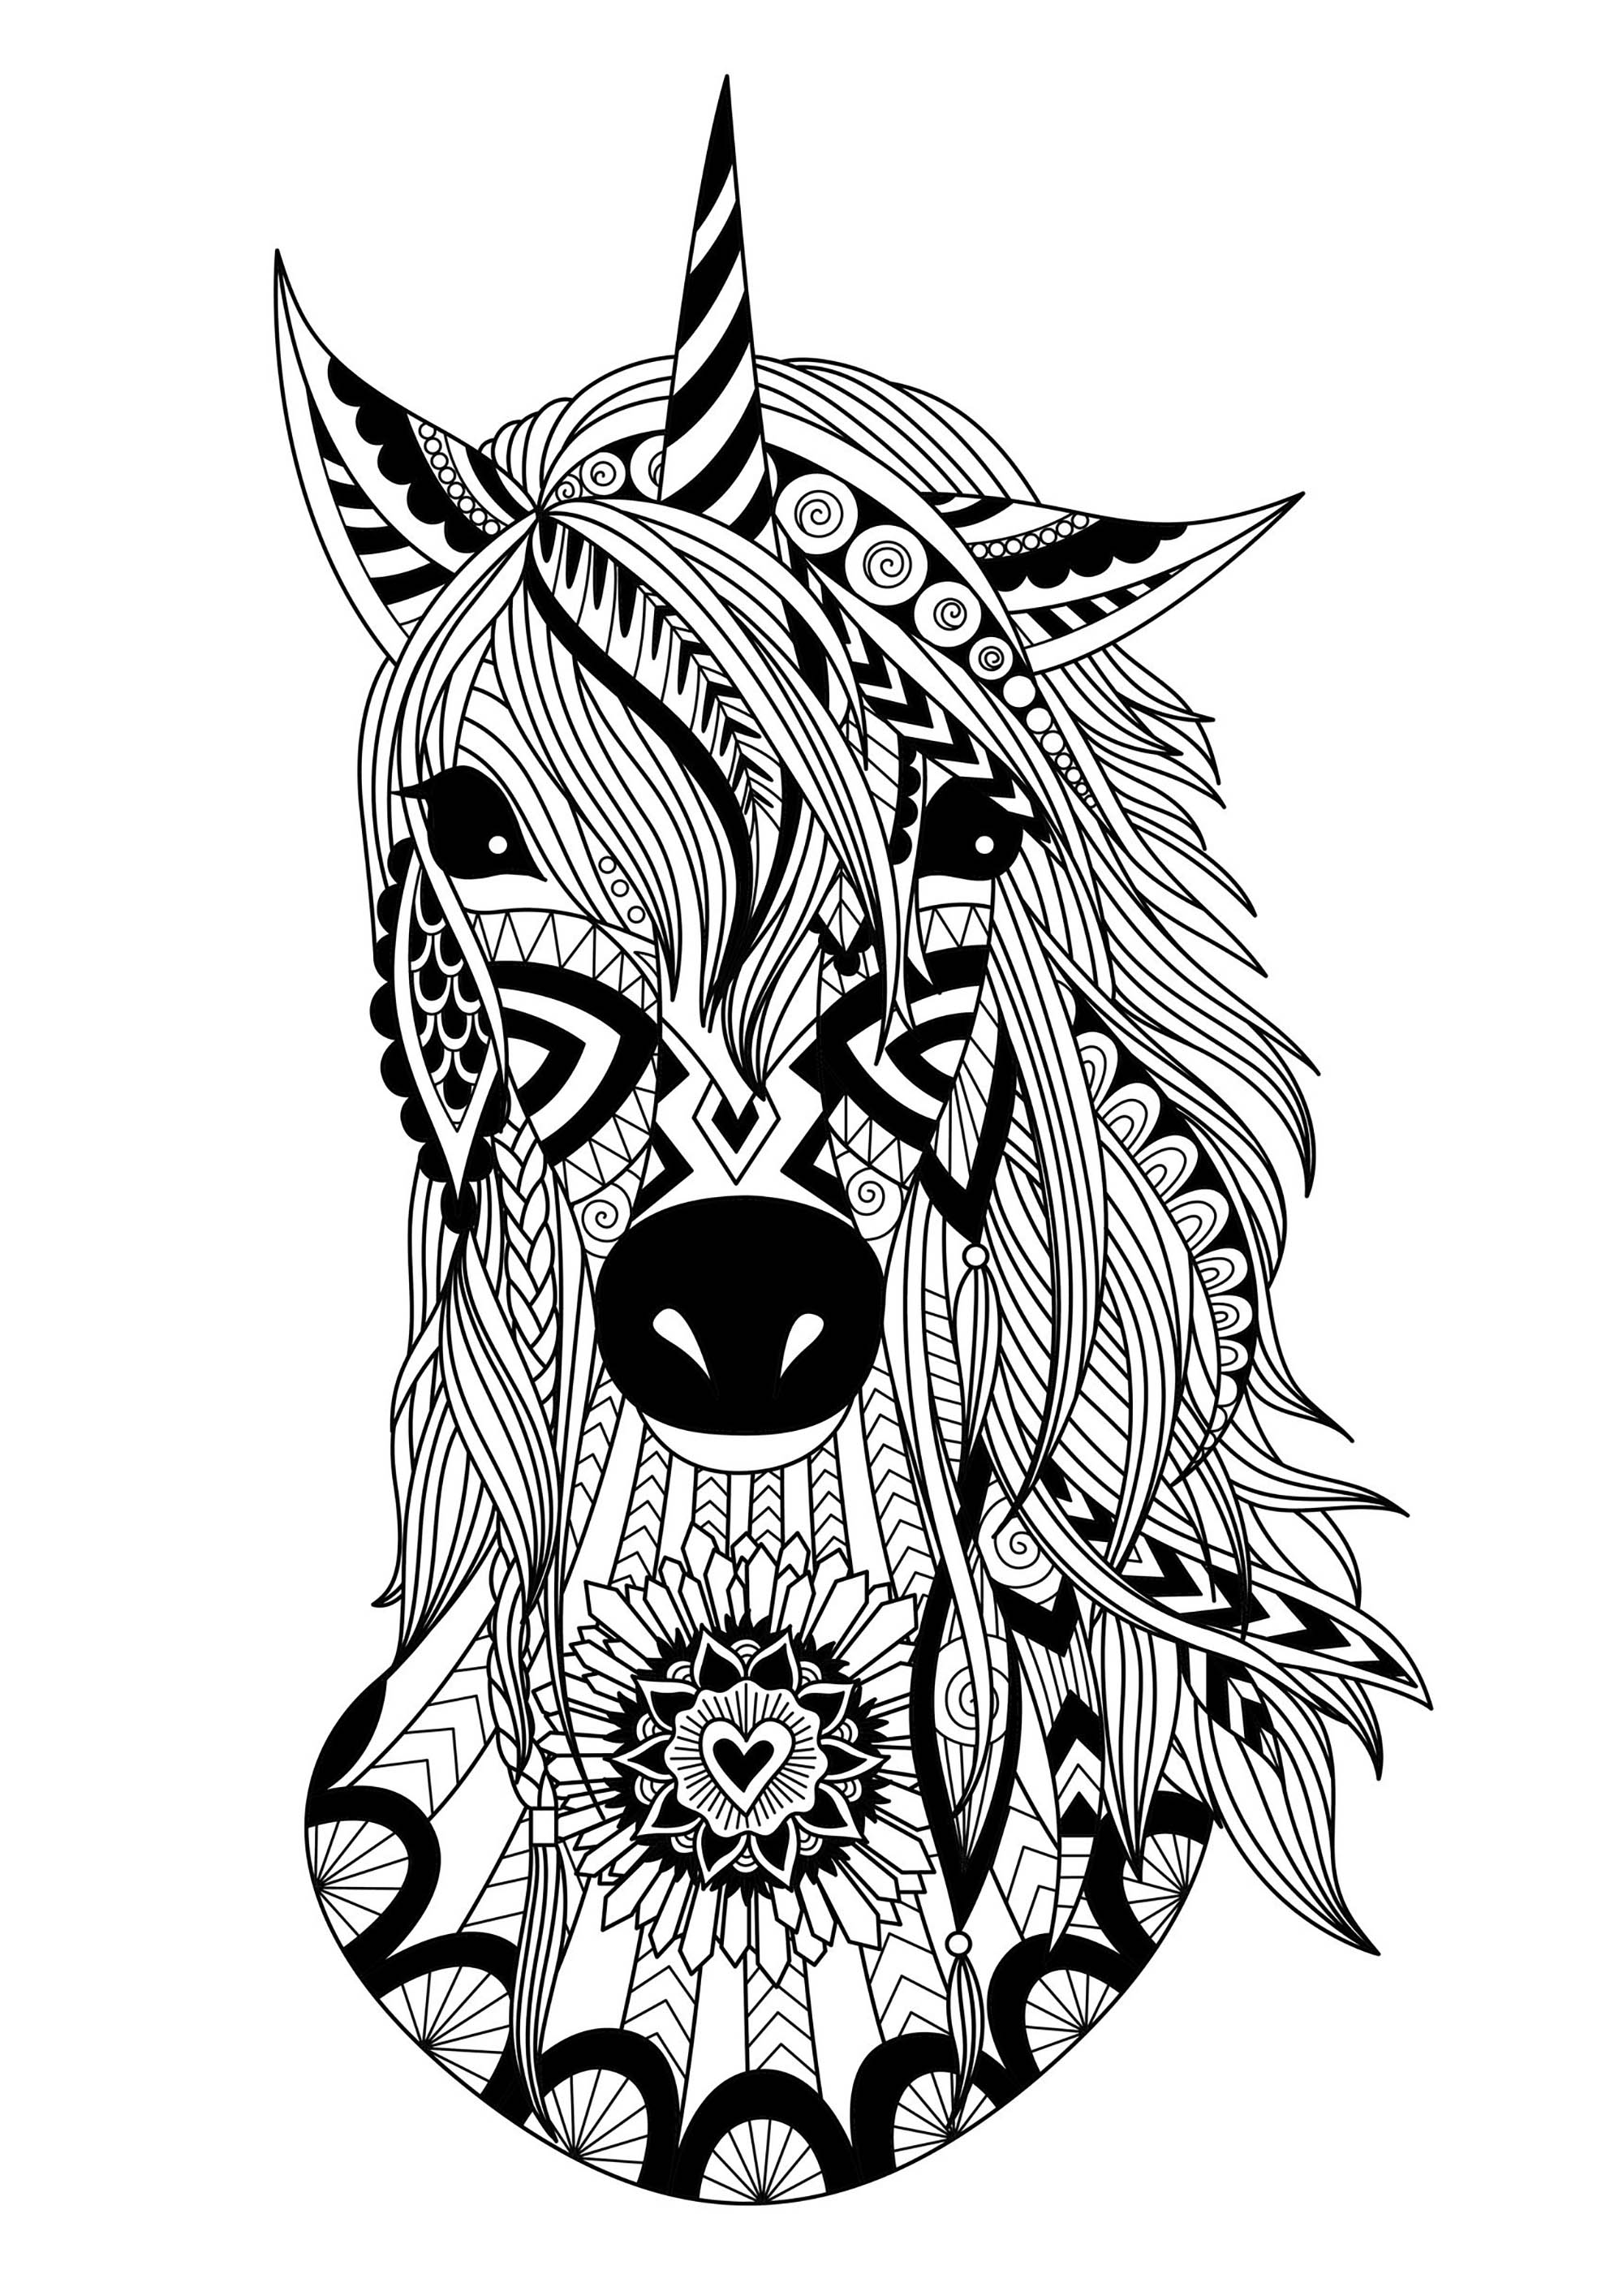 Licorne zentangle simple Licornes Coloriages